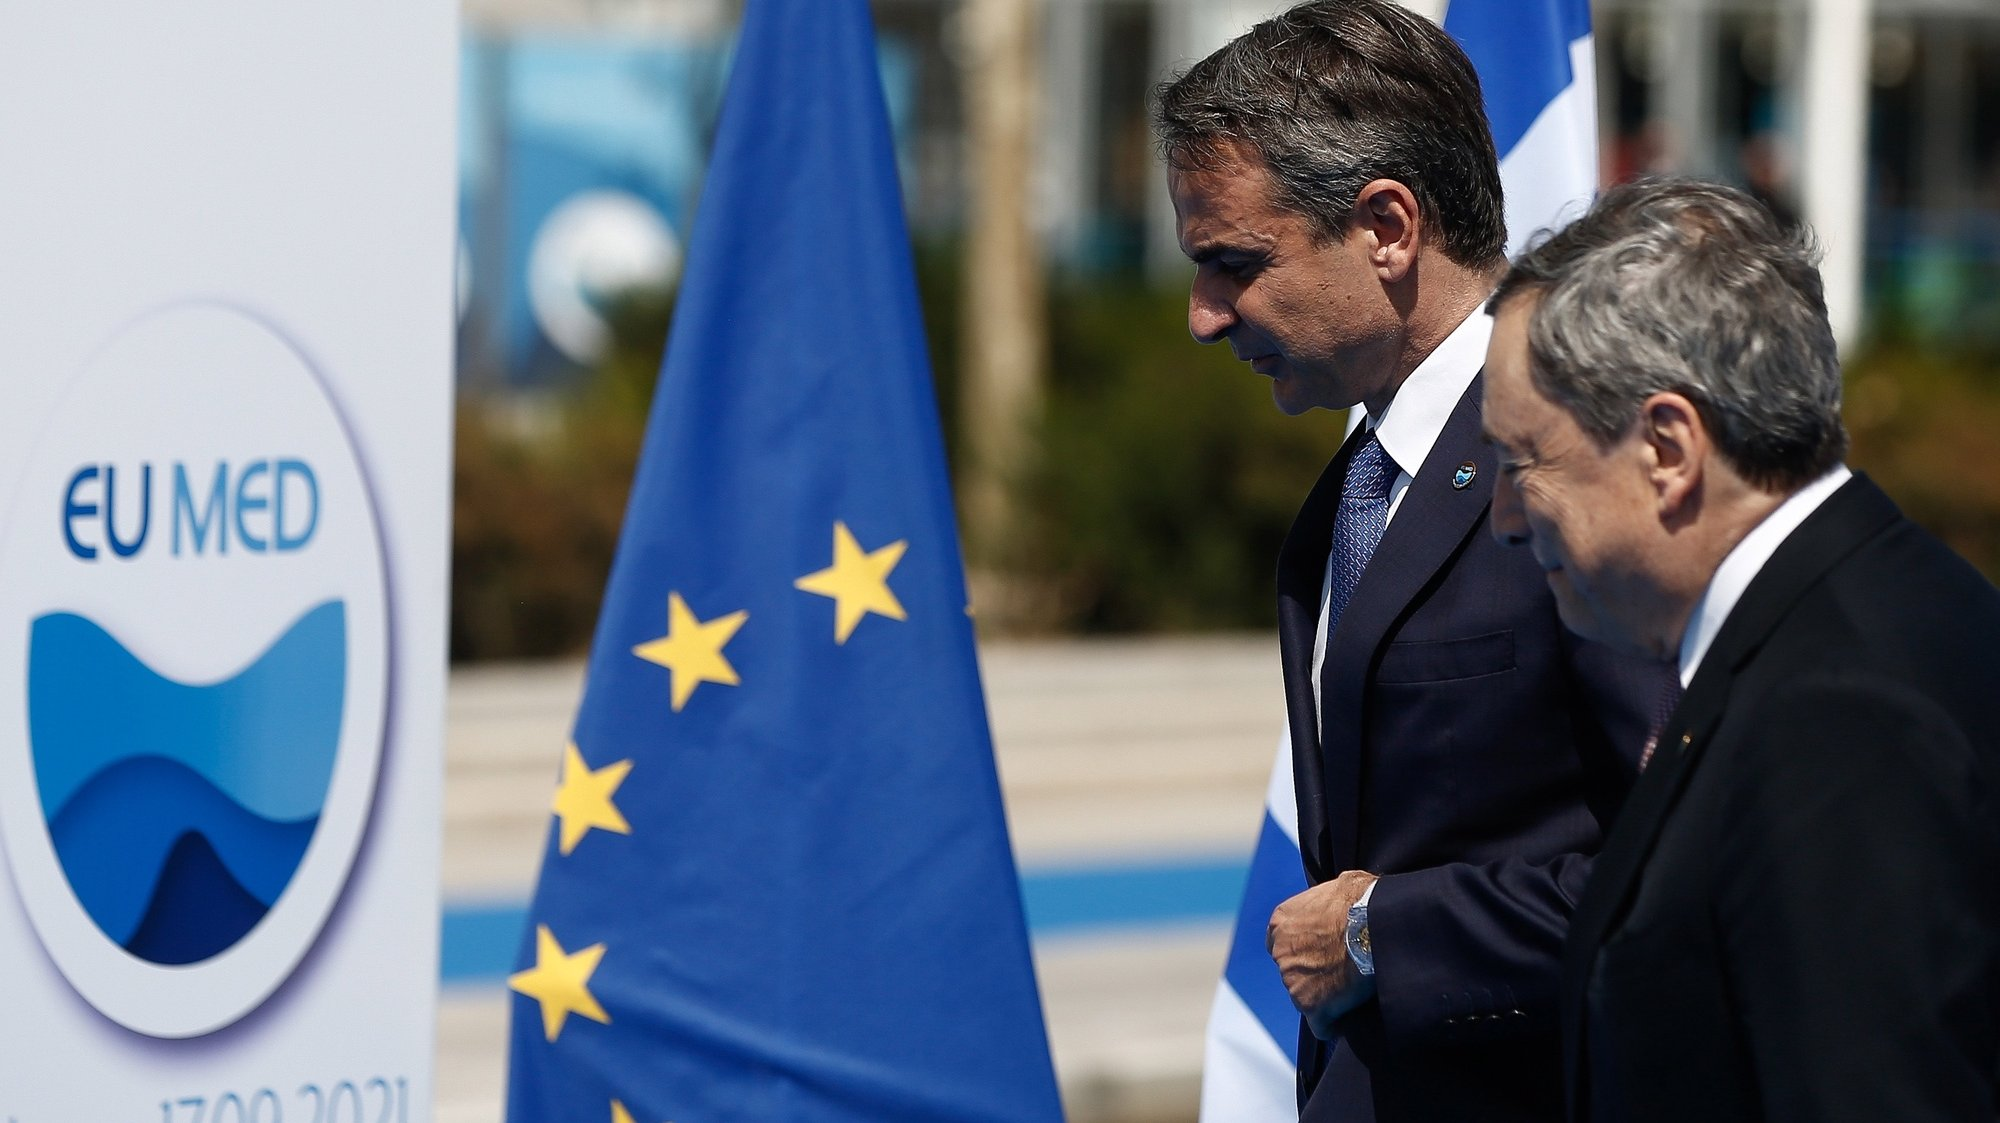 epa09473128 Greek Prime Minister Kyriakos Mitsotakis (L) welcomes Italian Prime Minister Mario Draghi (R), at the EUMed9 Summit, in Athens, Greece, 17 September 2021.The agenda of the Summit, which acquires special geopolitical weight, includes security challenges in the Mediterranean that endanger stability in the region, potential new crises, such as the threat of migration flows after the latest developments in Afghanistan. The leaders participating will include Mitsotakis, French President Emmanuel Macron, Spanish Prime Minister Pedro Sanchez, Italian Prime Minister Mario Draghi, Croatian Prime Minister Andrej Plenkovic, Cyprus President Nicos Anastasiades, Malta Prime Minister Robert Abela, Slovenian Prime Minister Janez Jansa and Portuguese Foreign Minister Augusto Santos Silva.  EPA/YANNIS KOLESIDIS